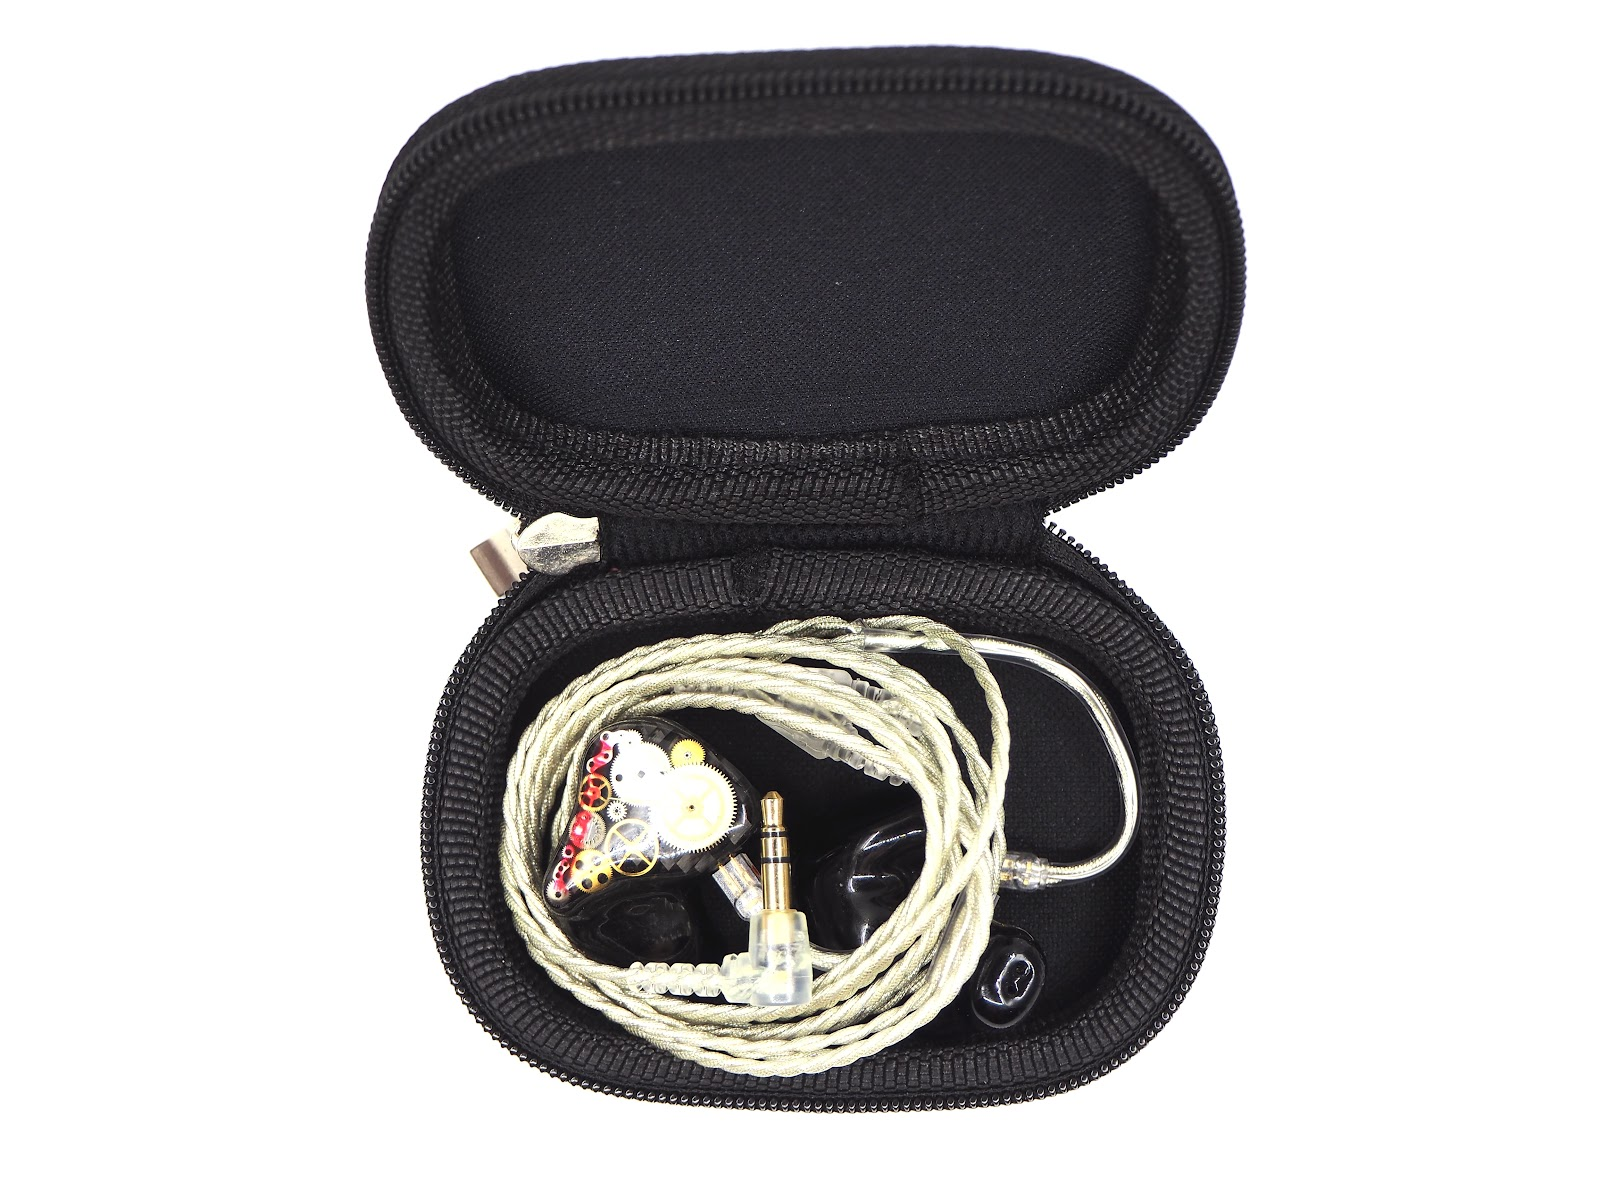 The stock cable and AV3 are stored in the case